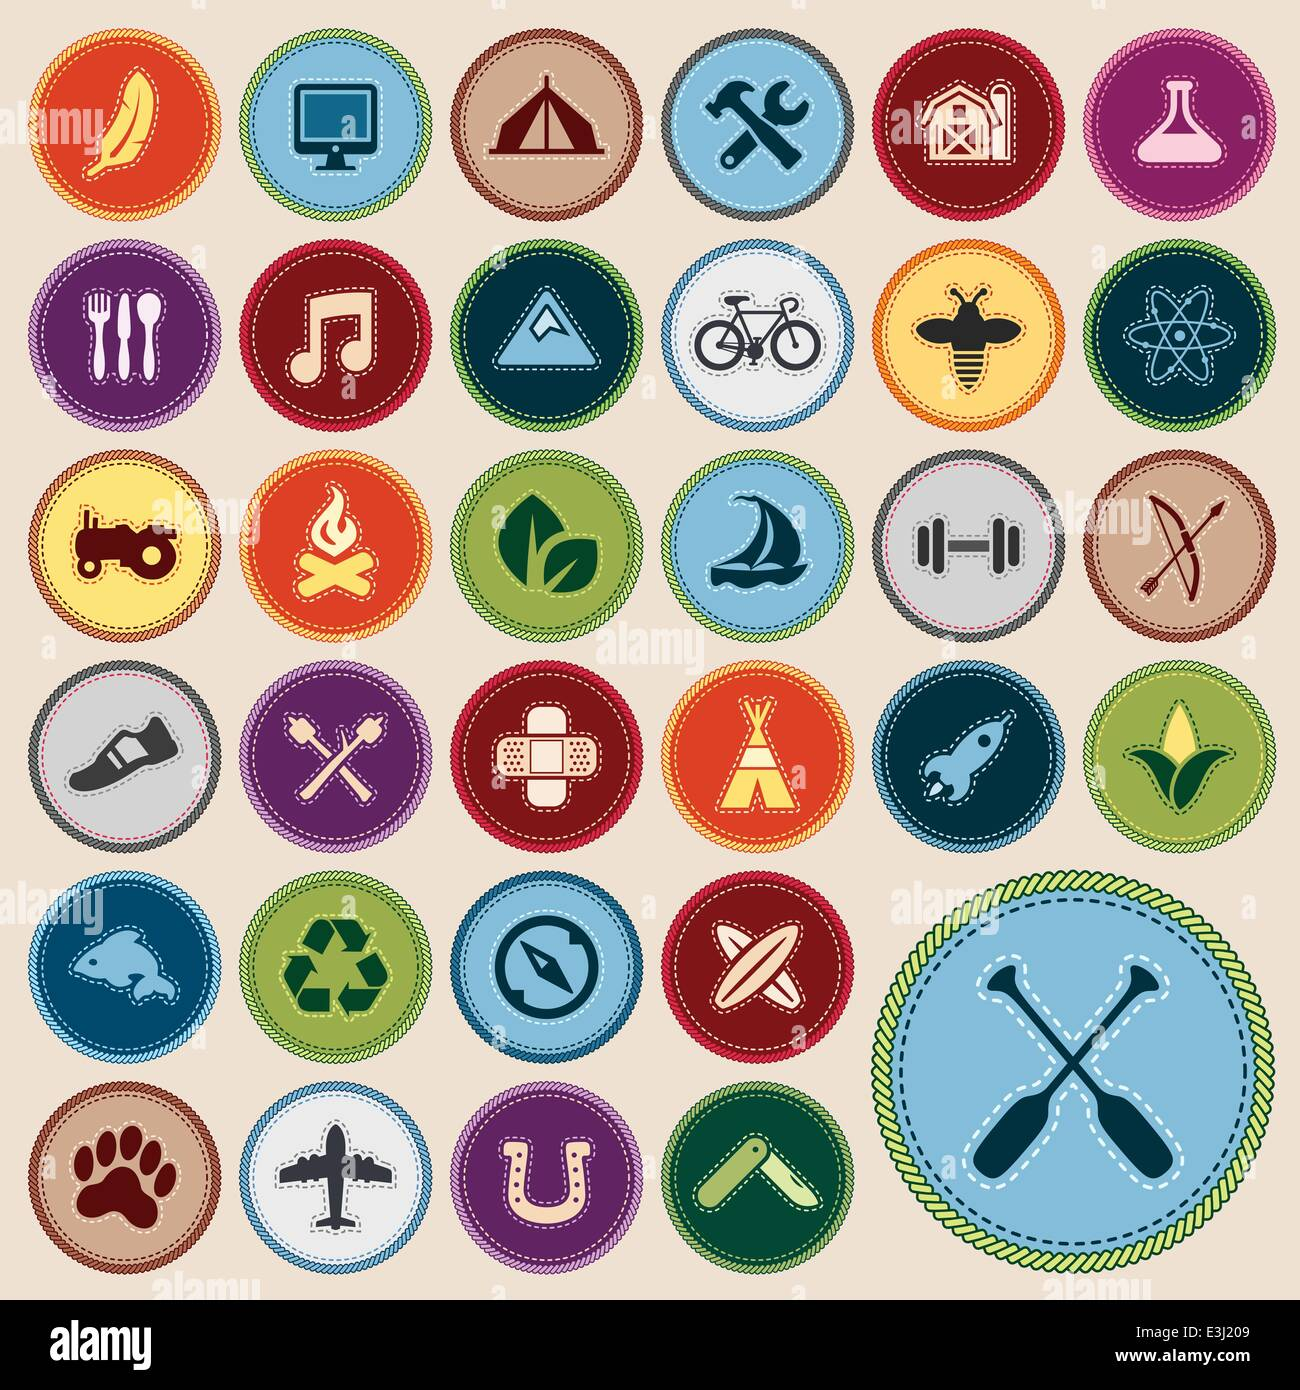 Set of scout merit badges for outdoor and academic activities - Stock Vector